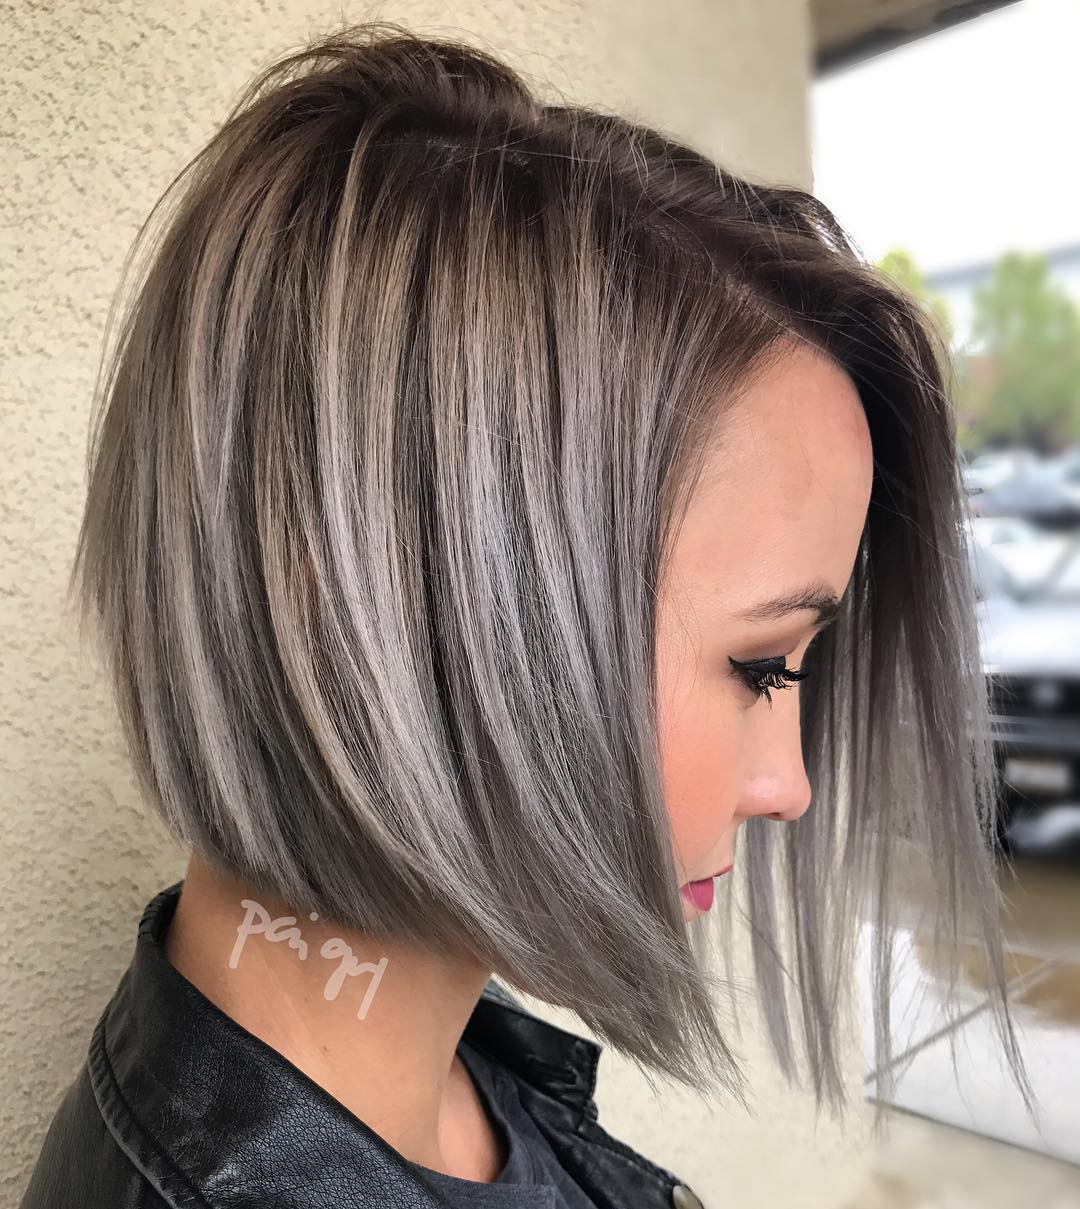 Fashion style Layered Short hairstyles pictures for lady